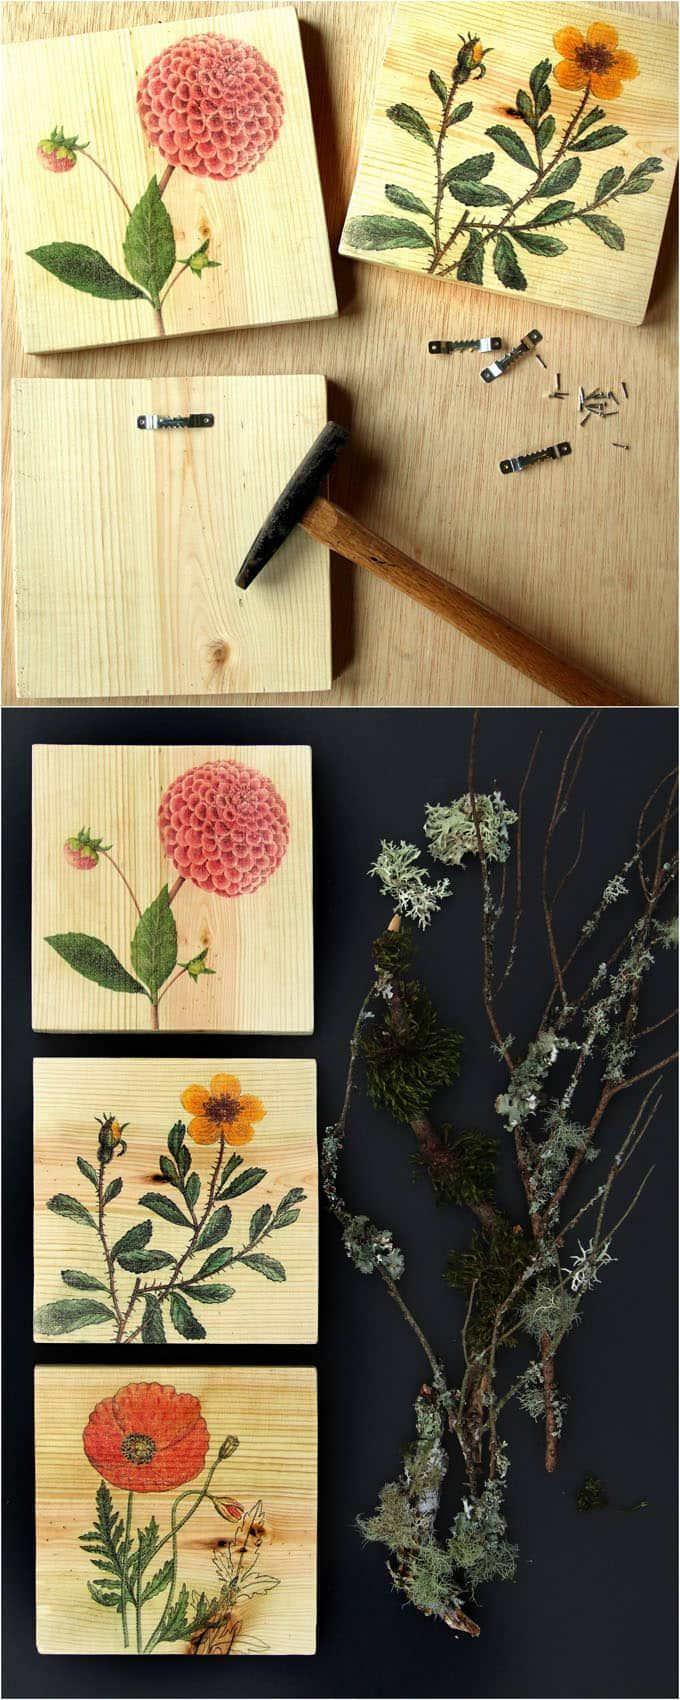 Super easy tutorial on how to transfer image or photo to wood in 2 minutes at almost no cost  make beautiful printed wood wall art home decor  gifts  A Piece of Rainbow